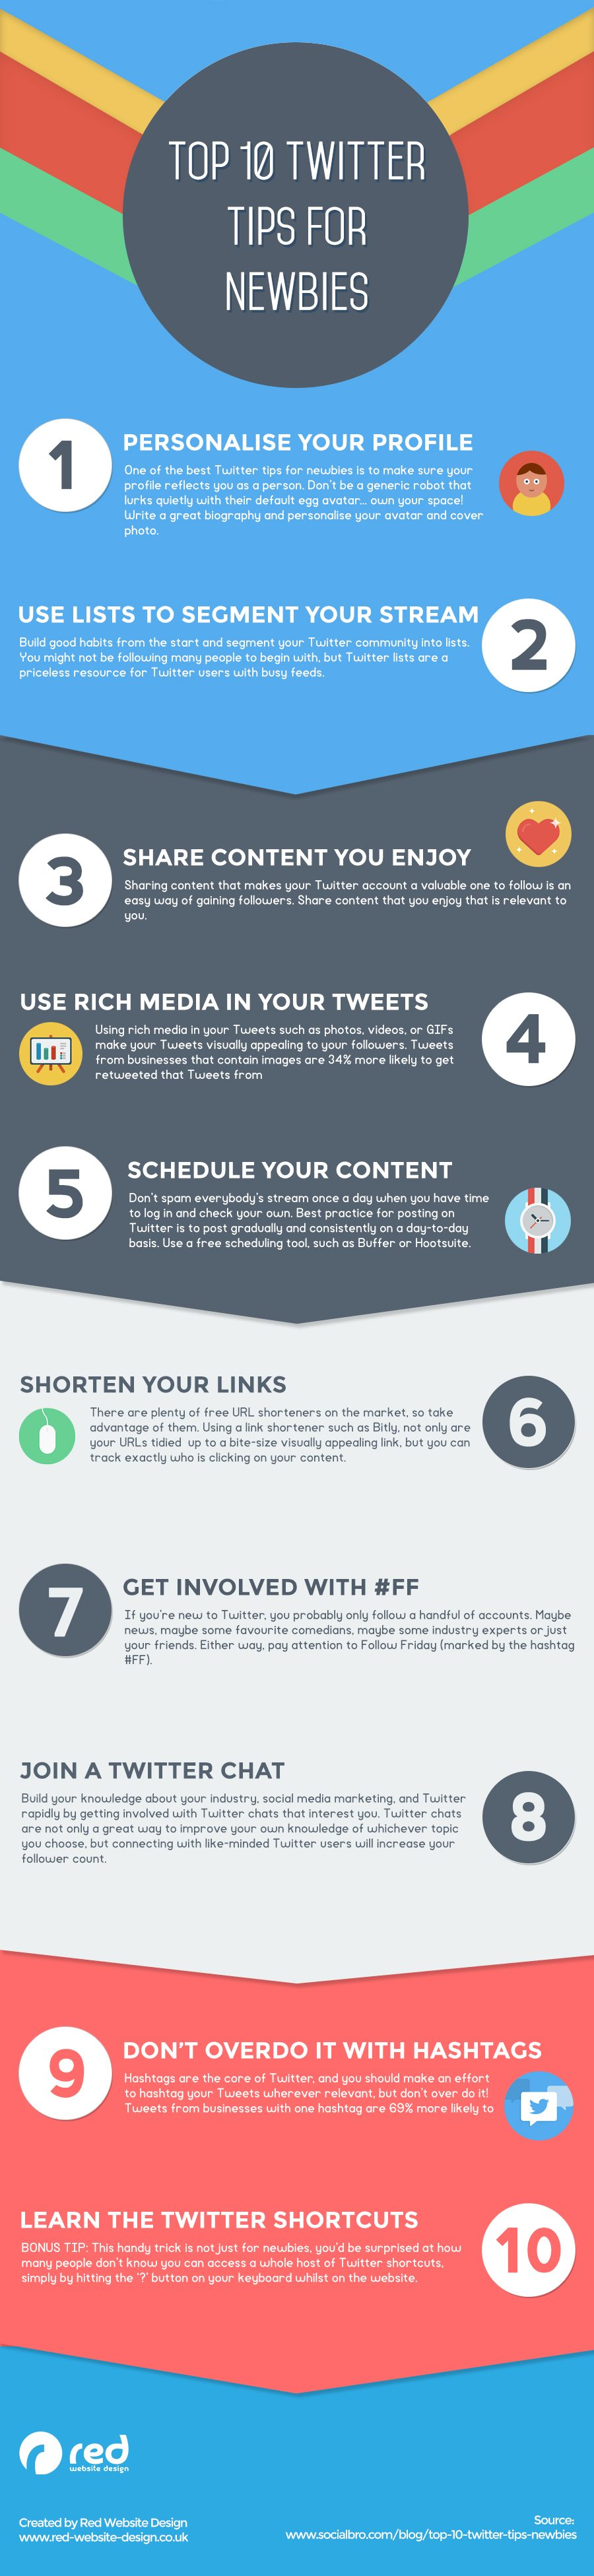 A Beginners Guide to Twitter: 10 Tips for Success [Infographic] | Social Media Today